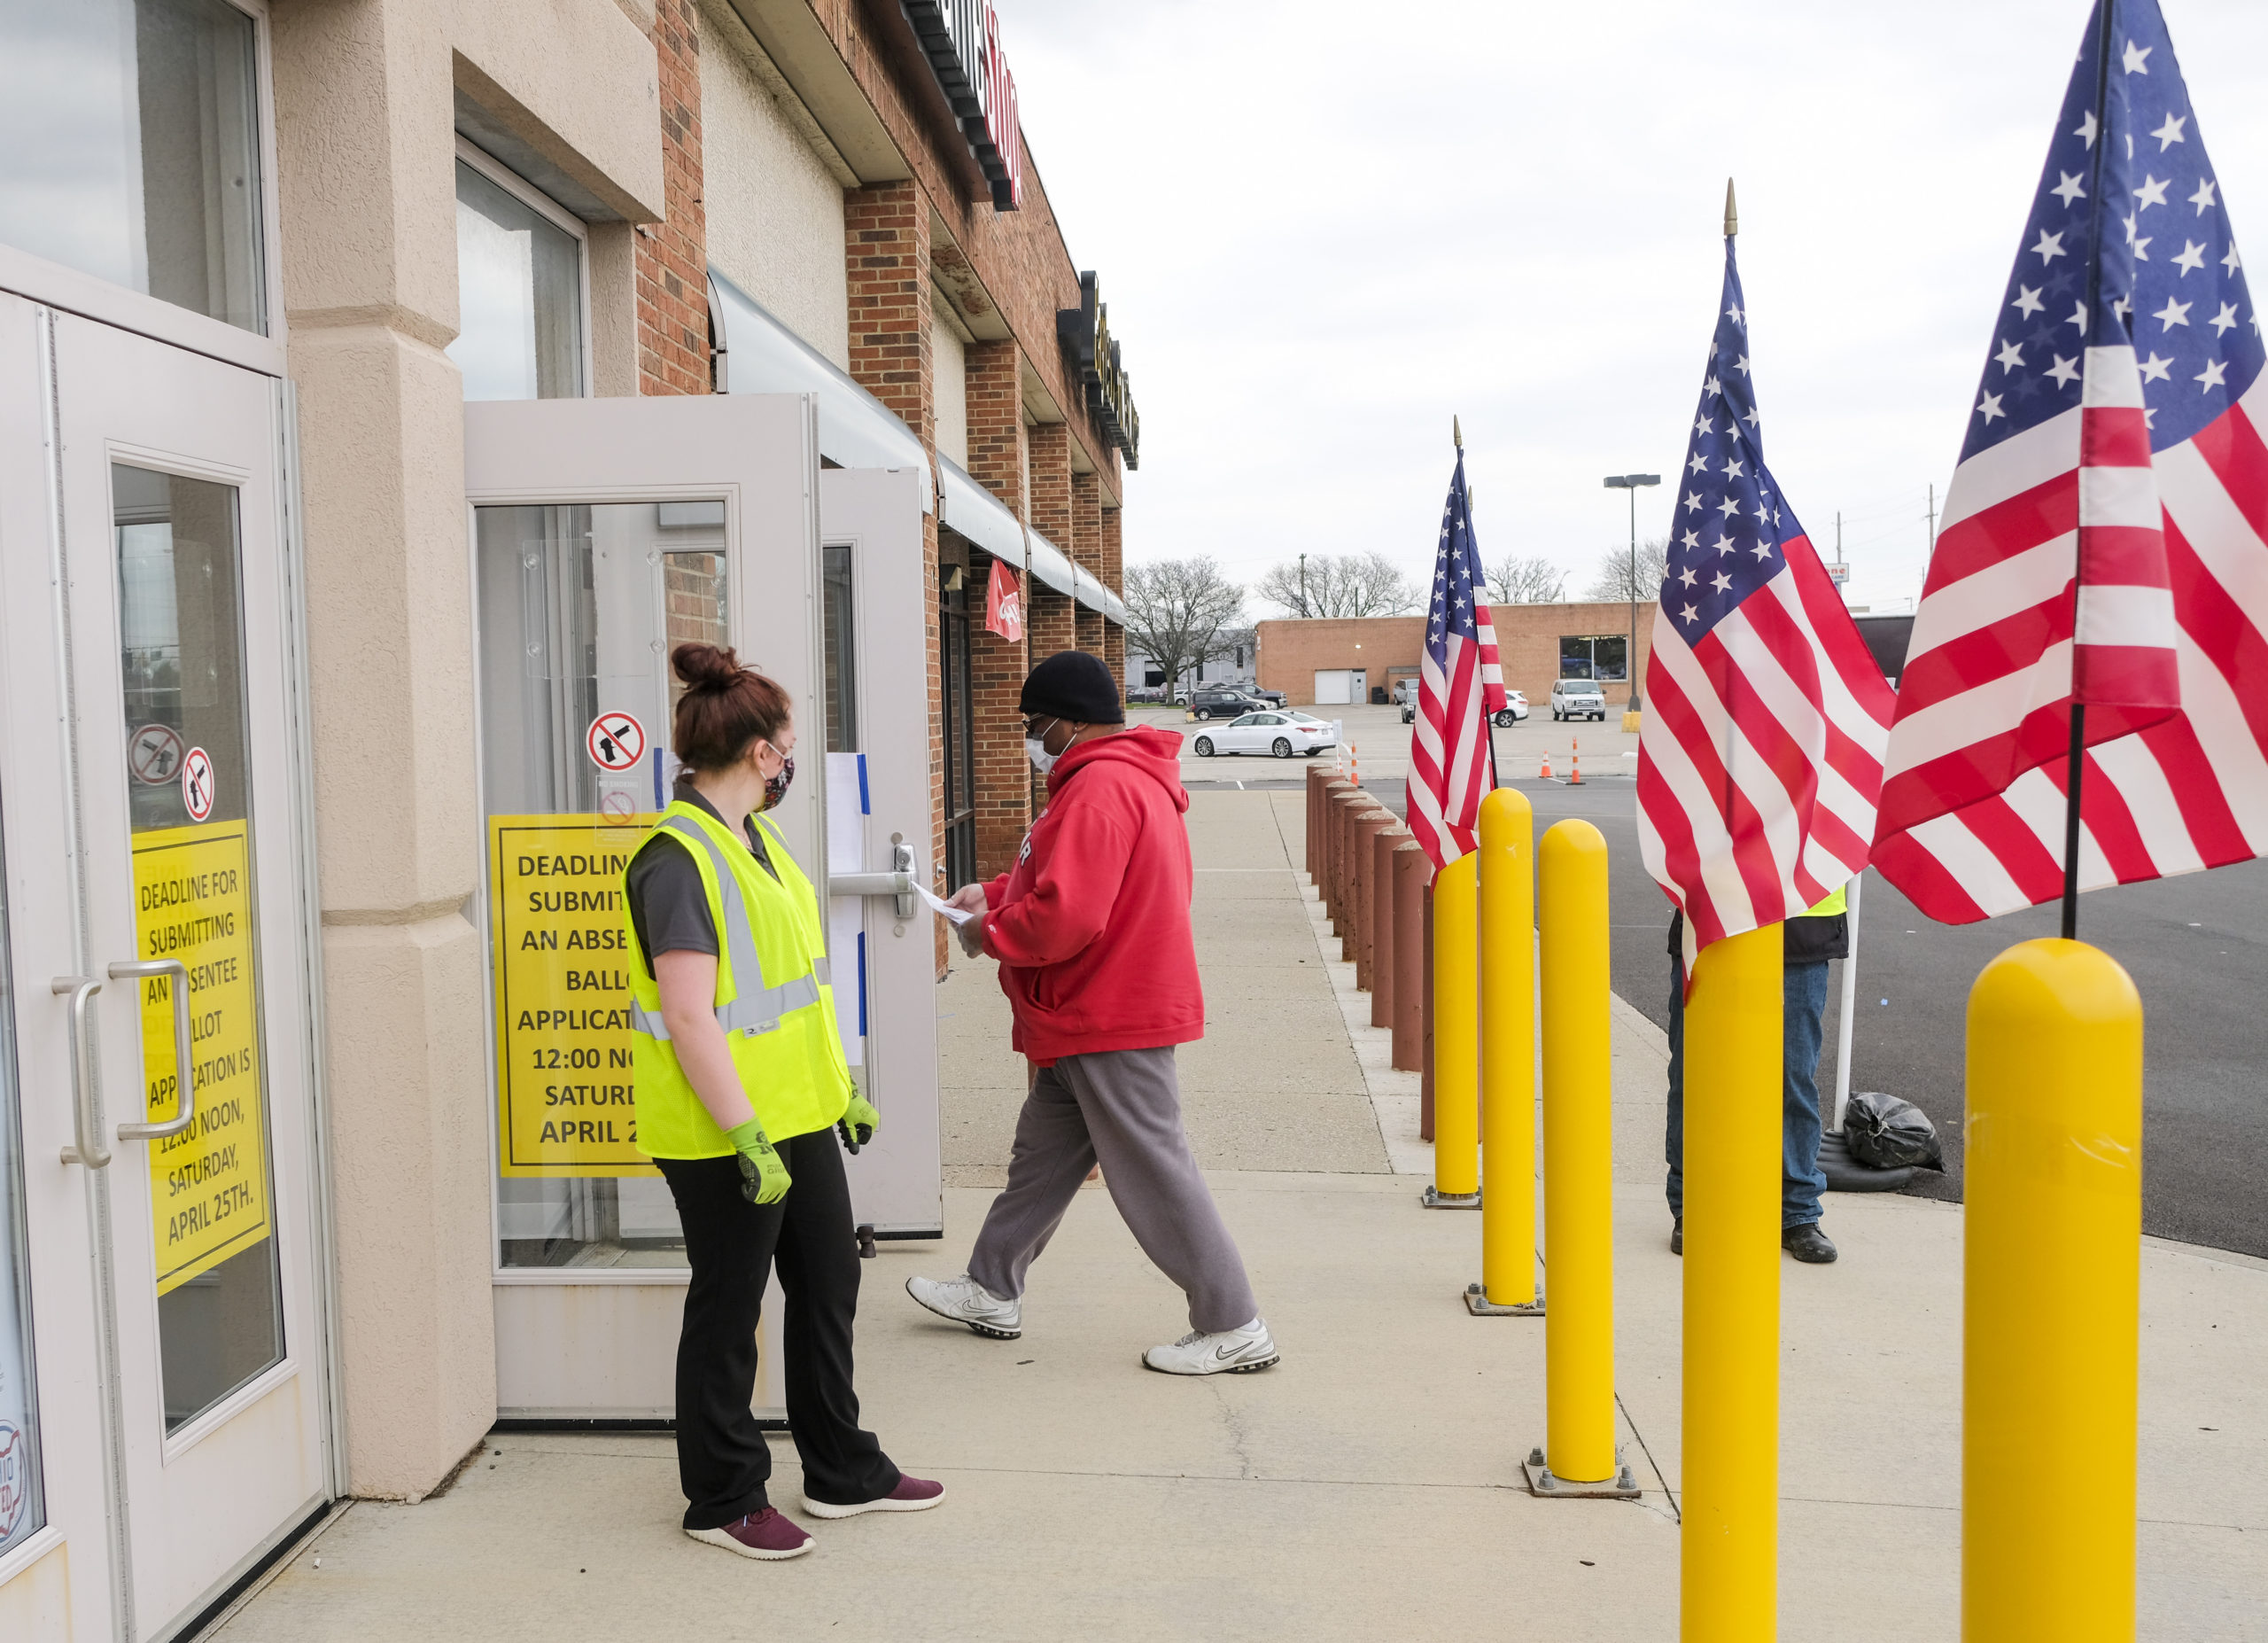 COLUMBUS, OH - APRIL 28: Ohio residents who qualify cast their votes in person at the Franklin County Board of Elections headquarters on the final day of the the Primary Election on April 28, 2020 in Columbus, Ohio. The election which was postponed on March 17, is almost exclusively mail in or absentee. The only residents allowed to vote in person are those who are disabled, have no permanent residence, or who requested a ballot by mail but never received it. (Photo by Matthew Hatcher/Getty Images)